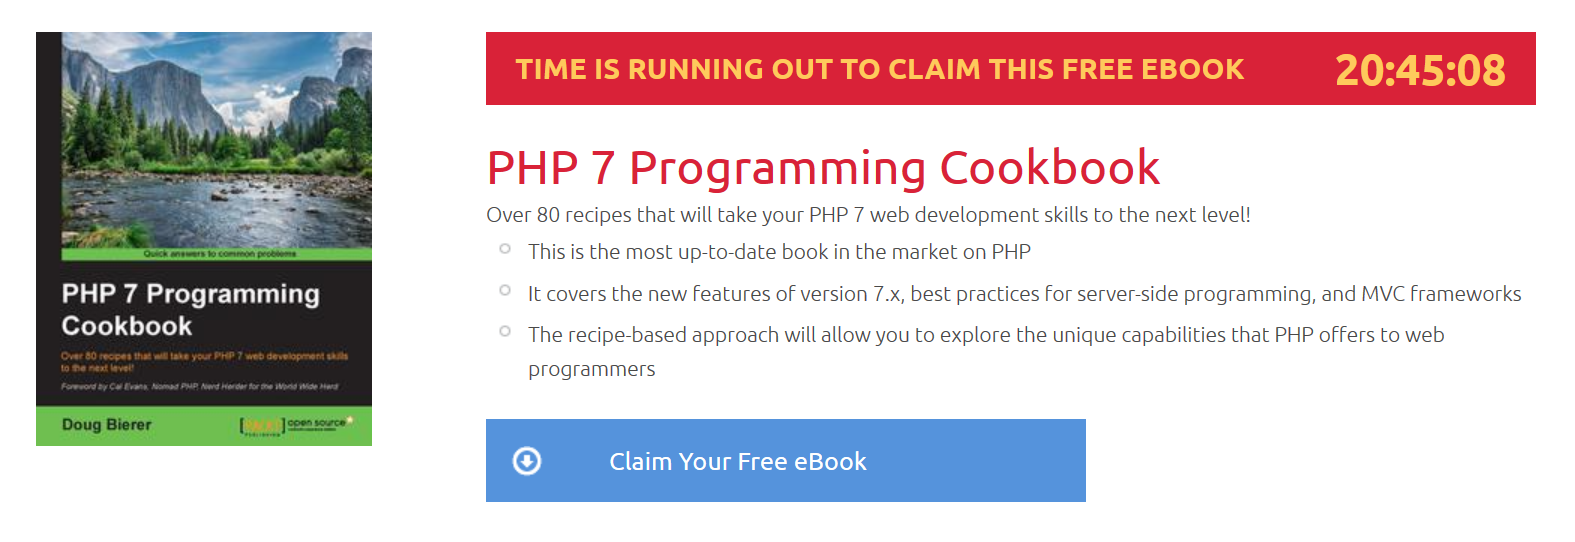 PHP 7 Programming Cookbook, ebook gratuito disponible durante las próximas 20 horas